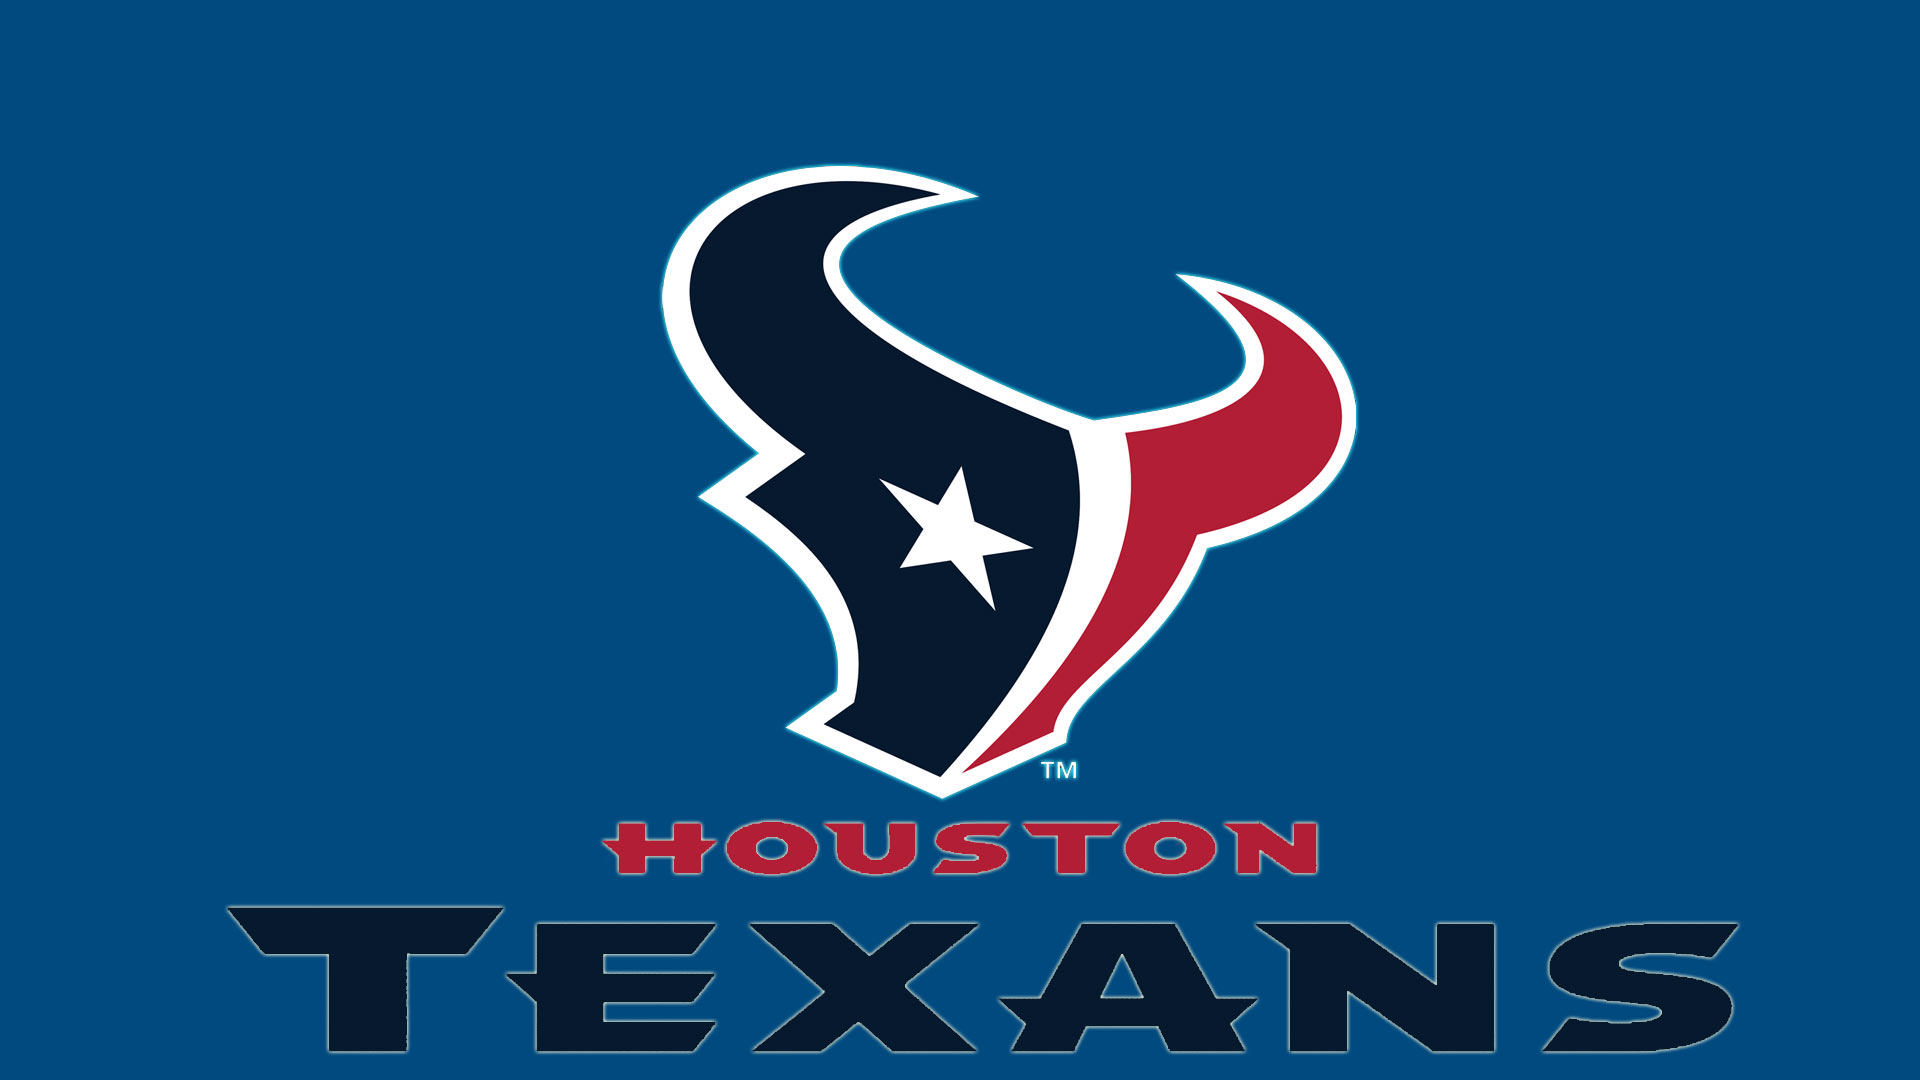 Houston Texans logo Hd 1080p Wallpaper screen size 1920X1080 1920x1080